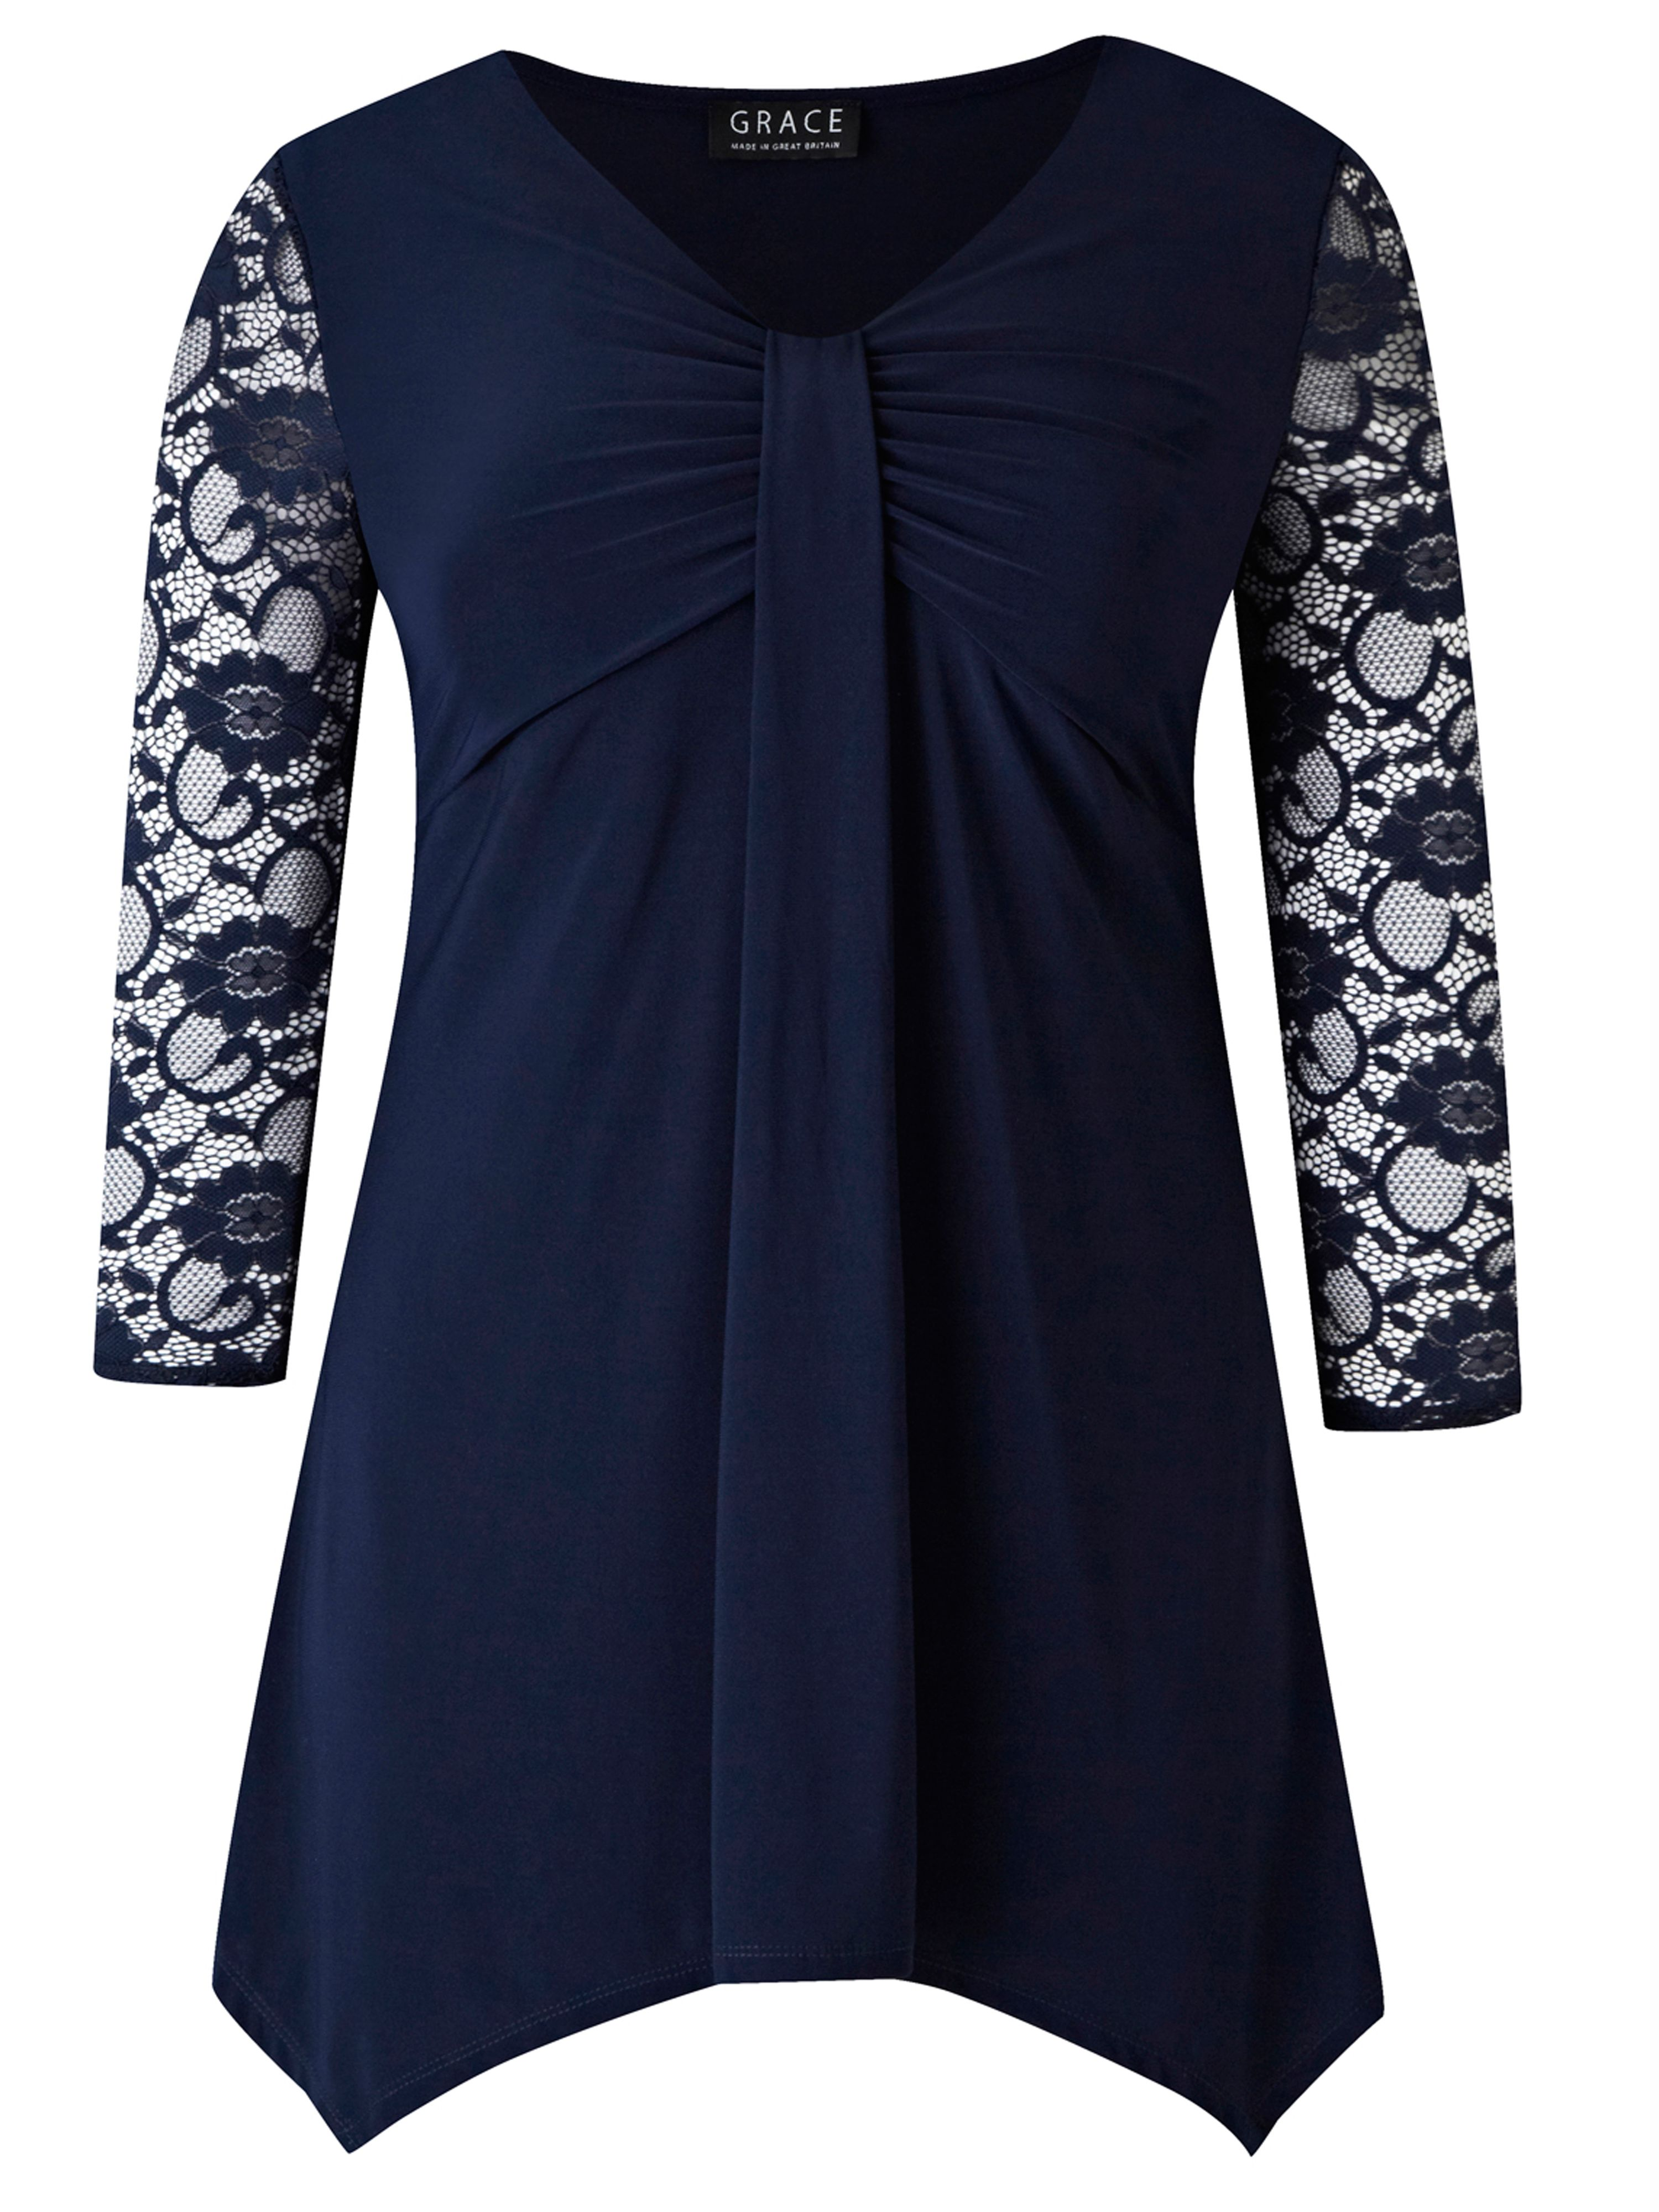 Grace Made In Britain Lace Tunic Top, Navy